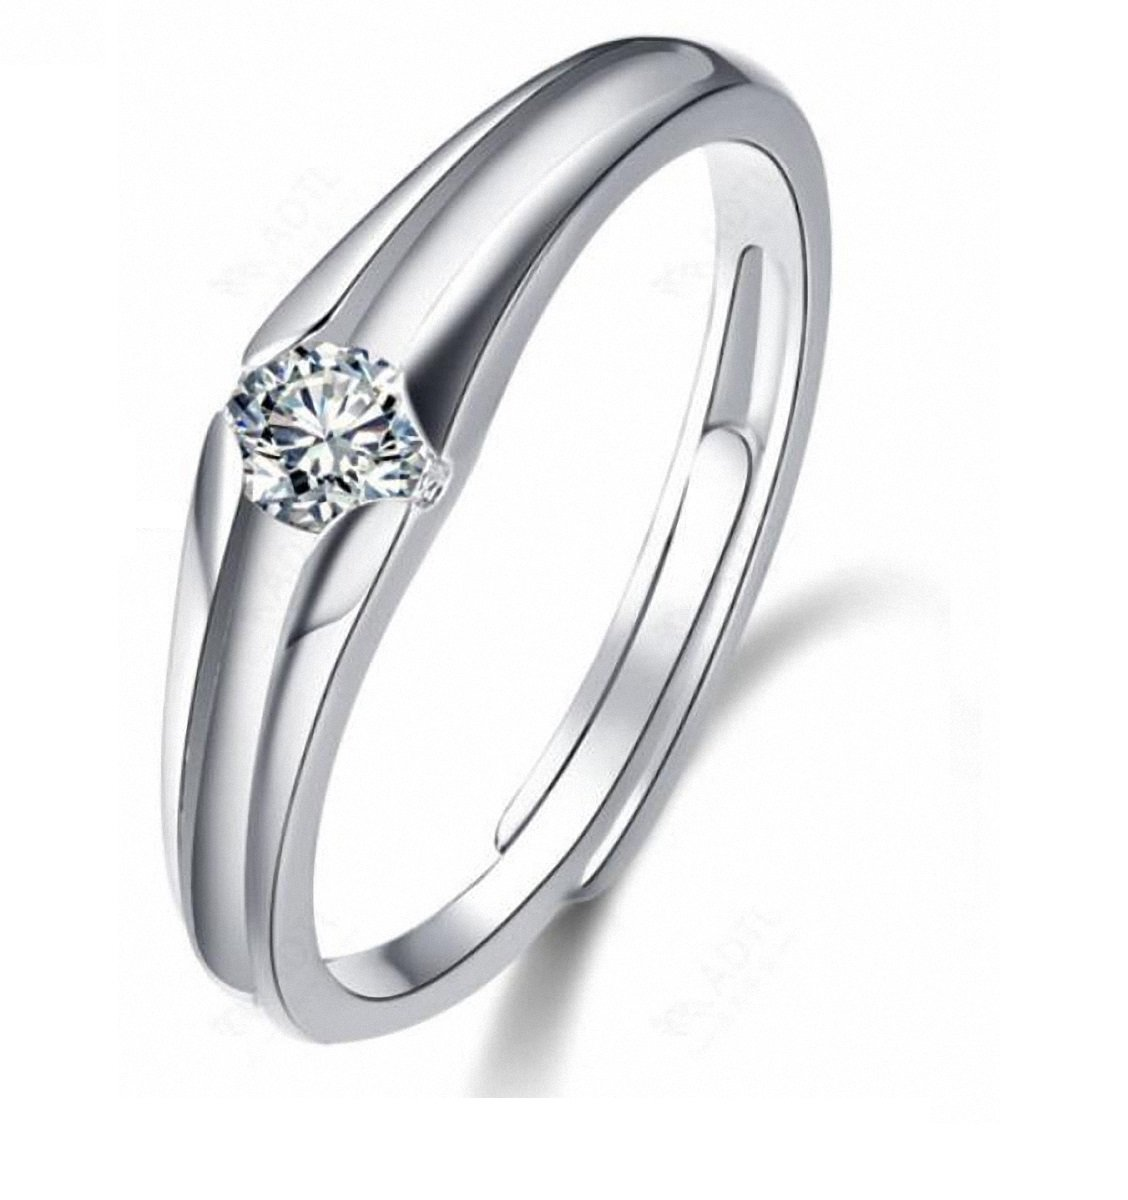 Tyzon Solid 925 Sterling Silver Love Promise Ring,Engagement Wedding Silver Ring